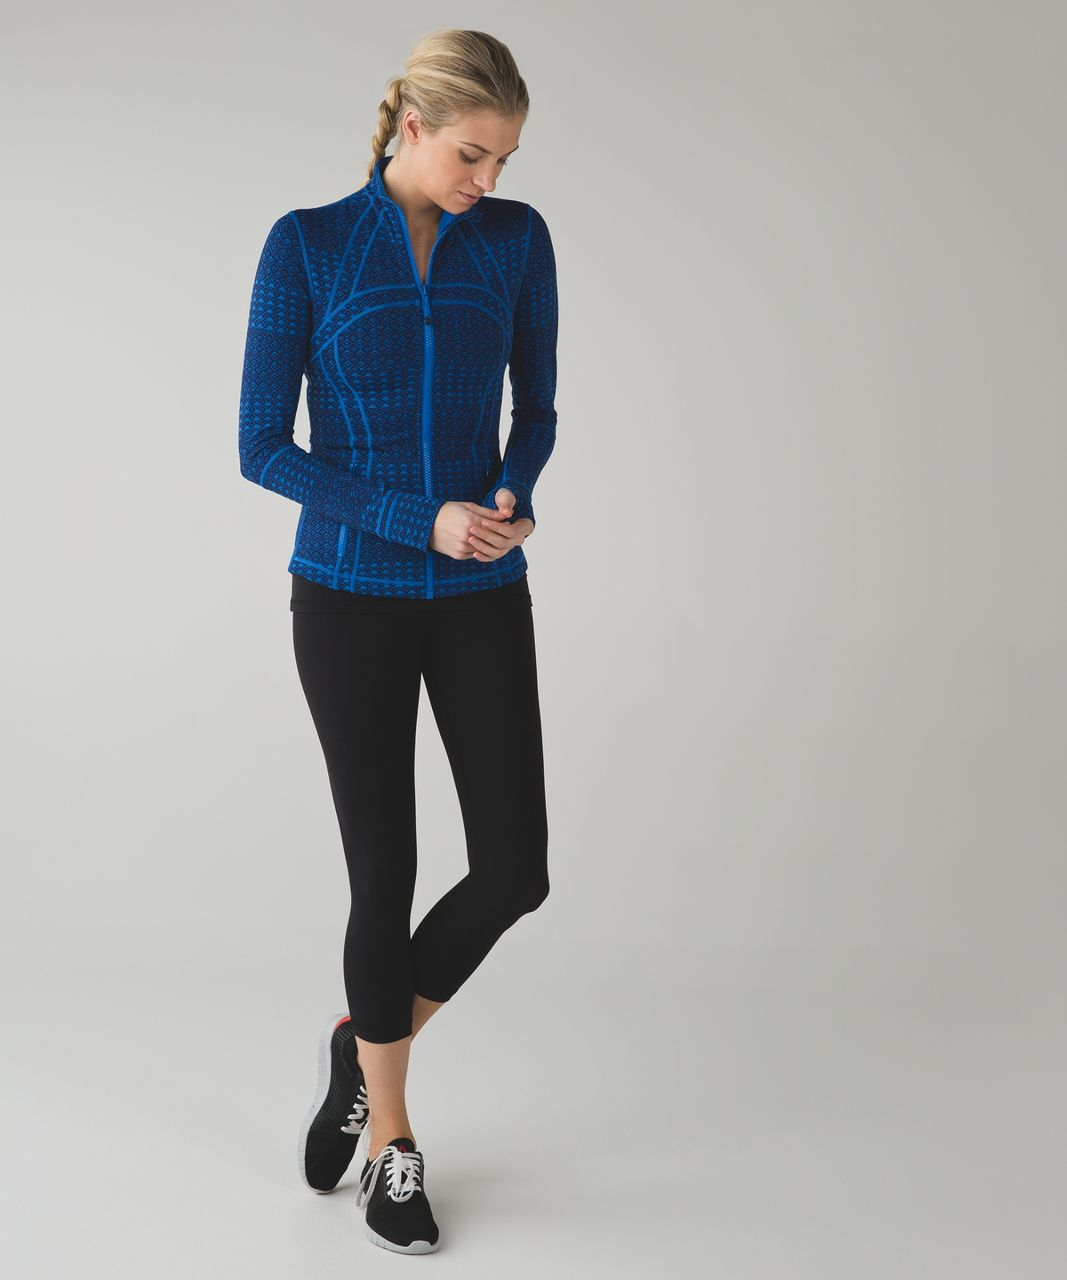 Lululemon Define Jacket - Triometric Stripe Lakeside Blue Hero Blue / Lakeside Blue